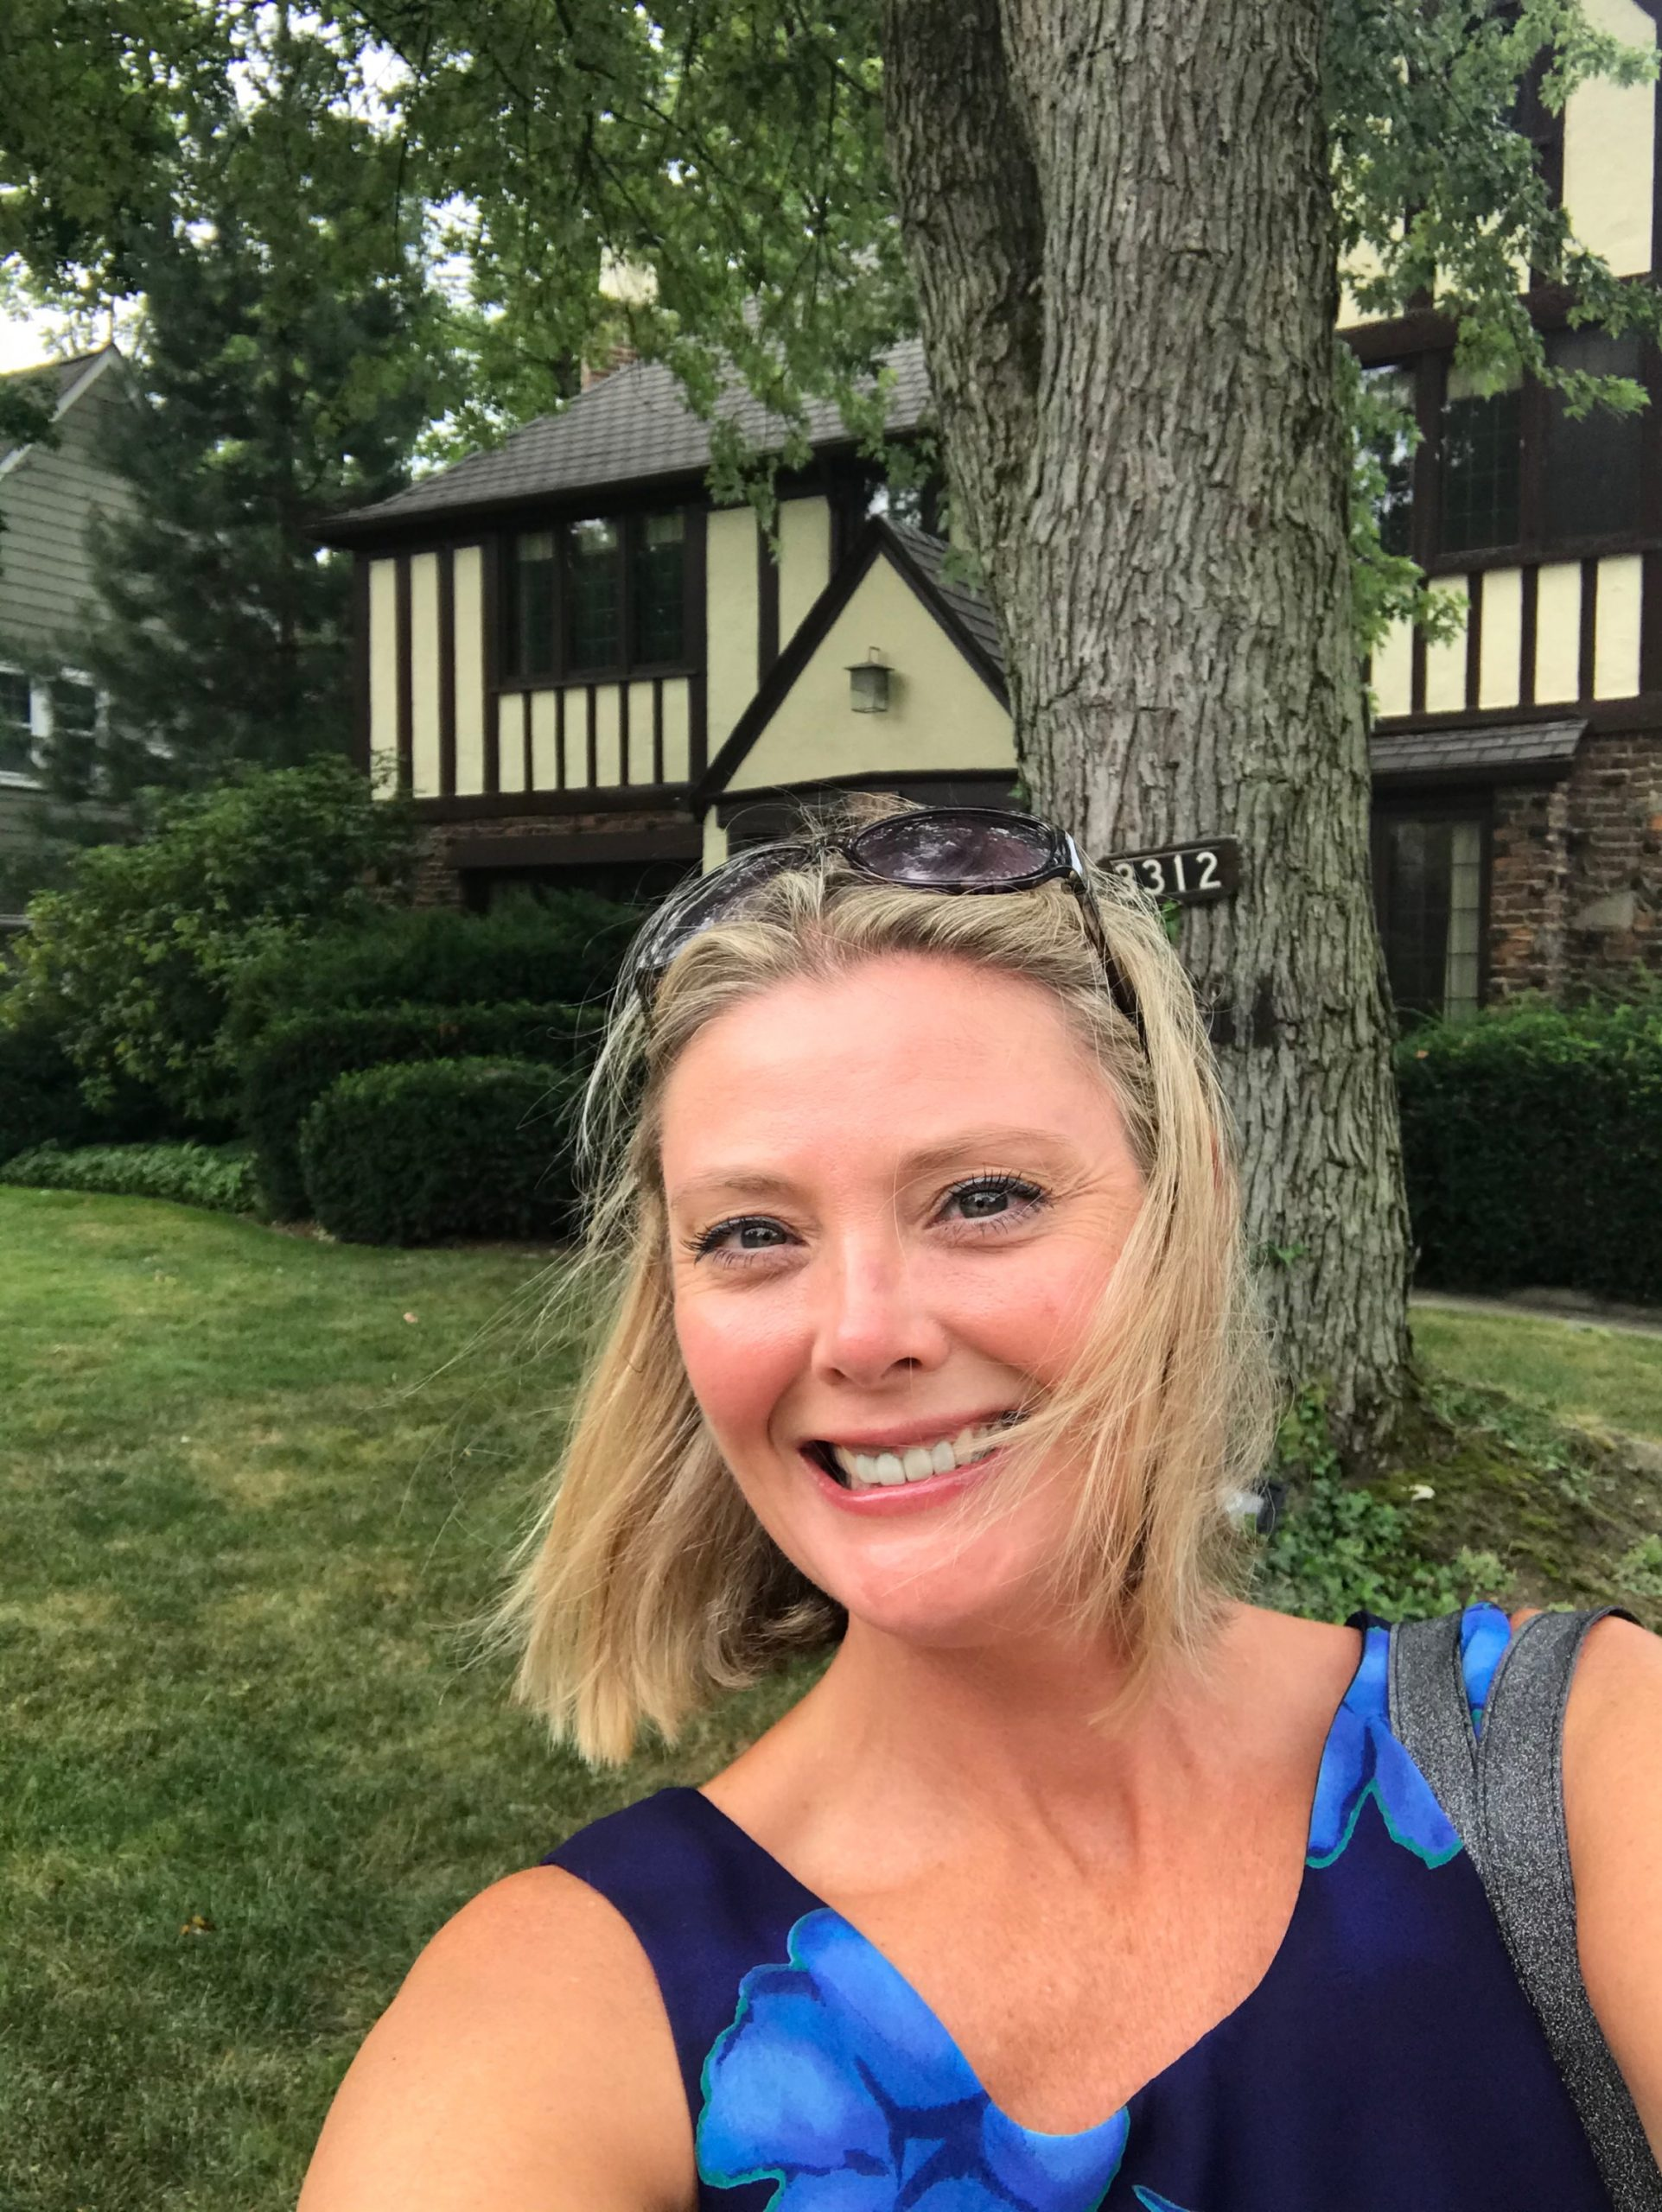 It was a beautiful day to tour homes and connect with realtors in the CLE for Green Leaf Home Inspections, LLC! Who's reaching your referral partners?